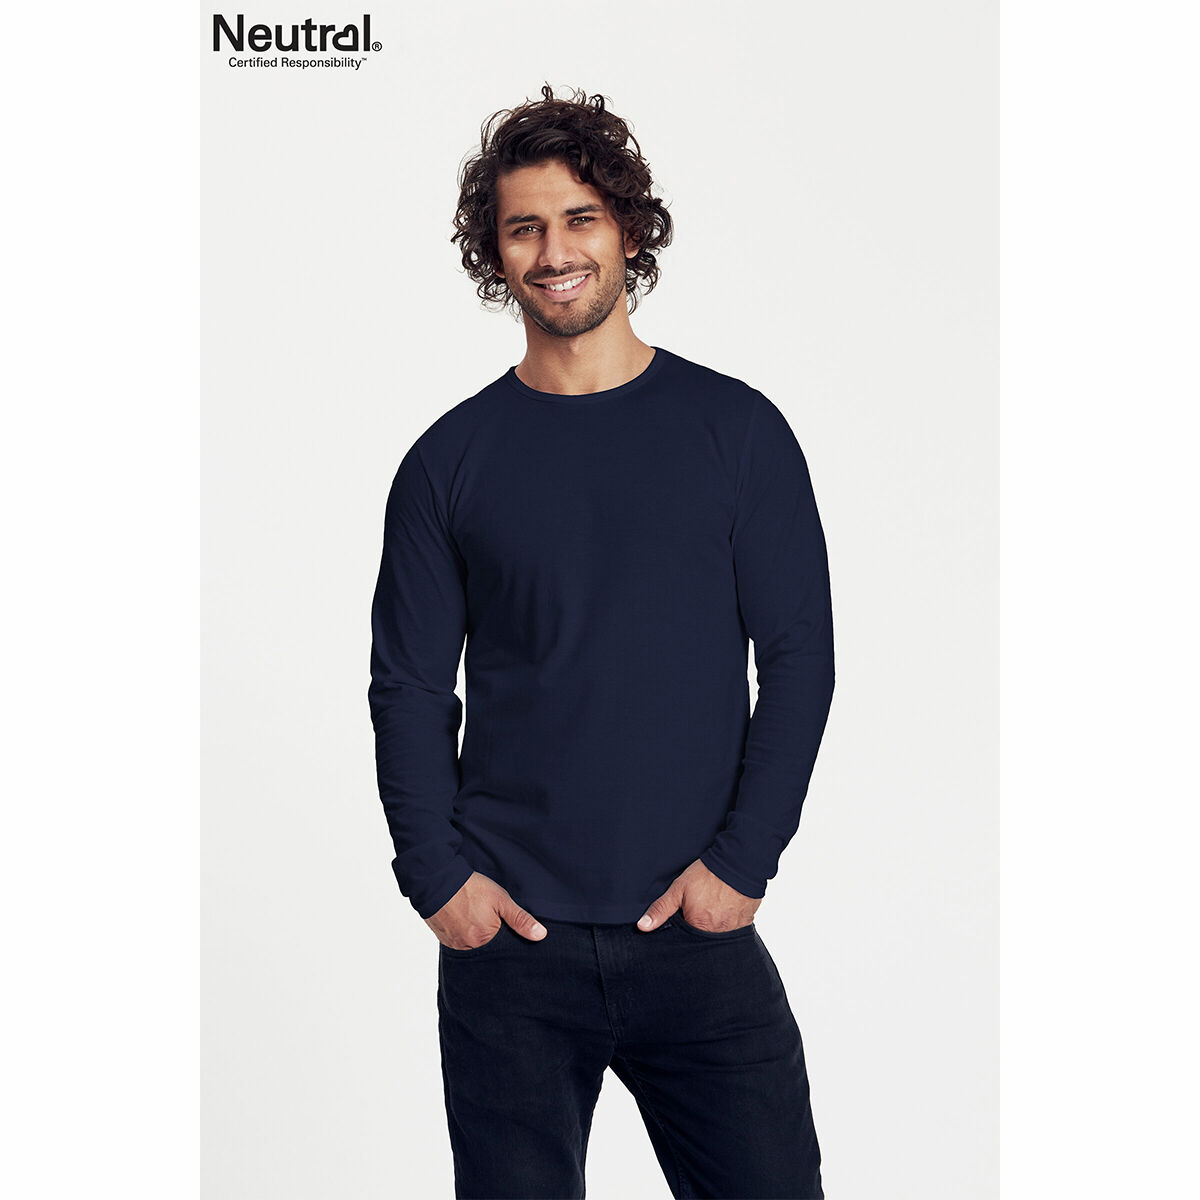 Neutral Long Sleeve Organic Men's T-shirt Navy